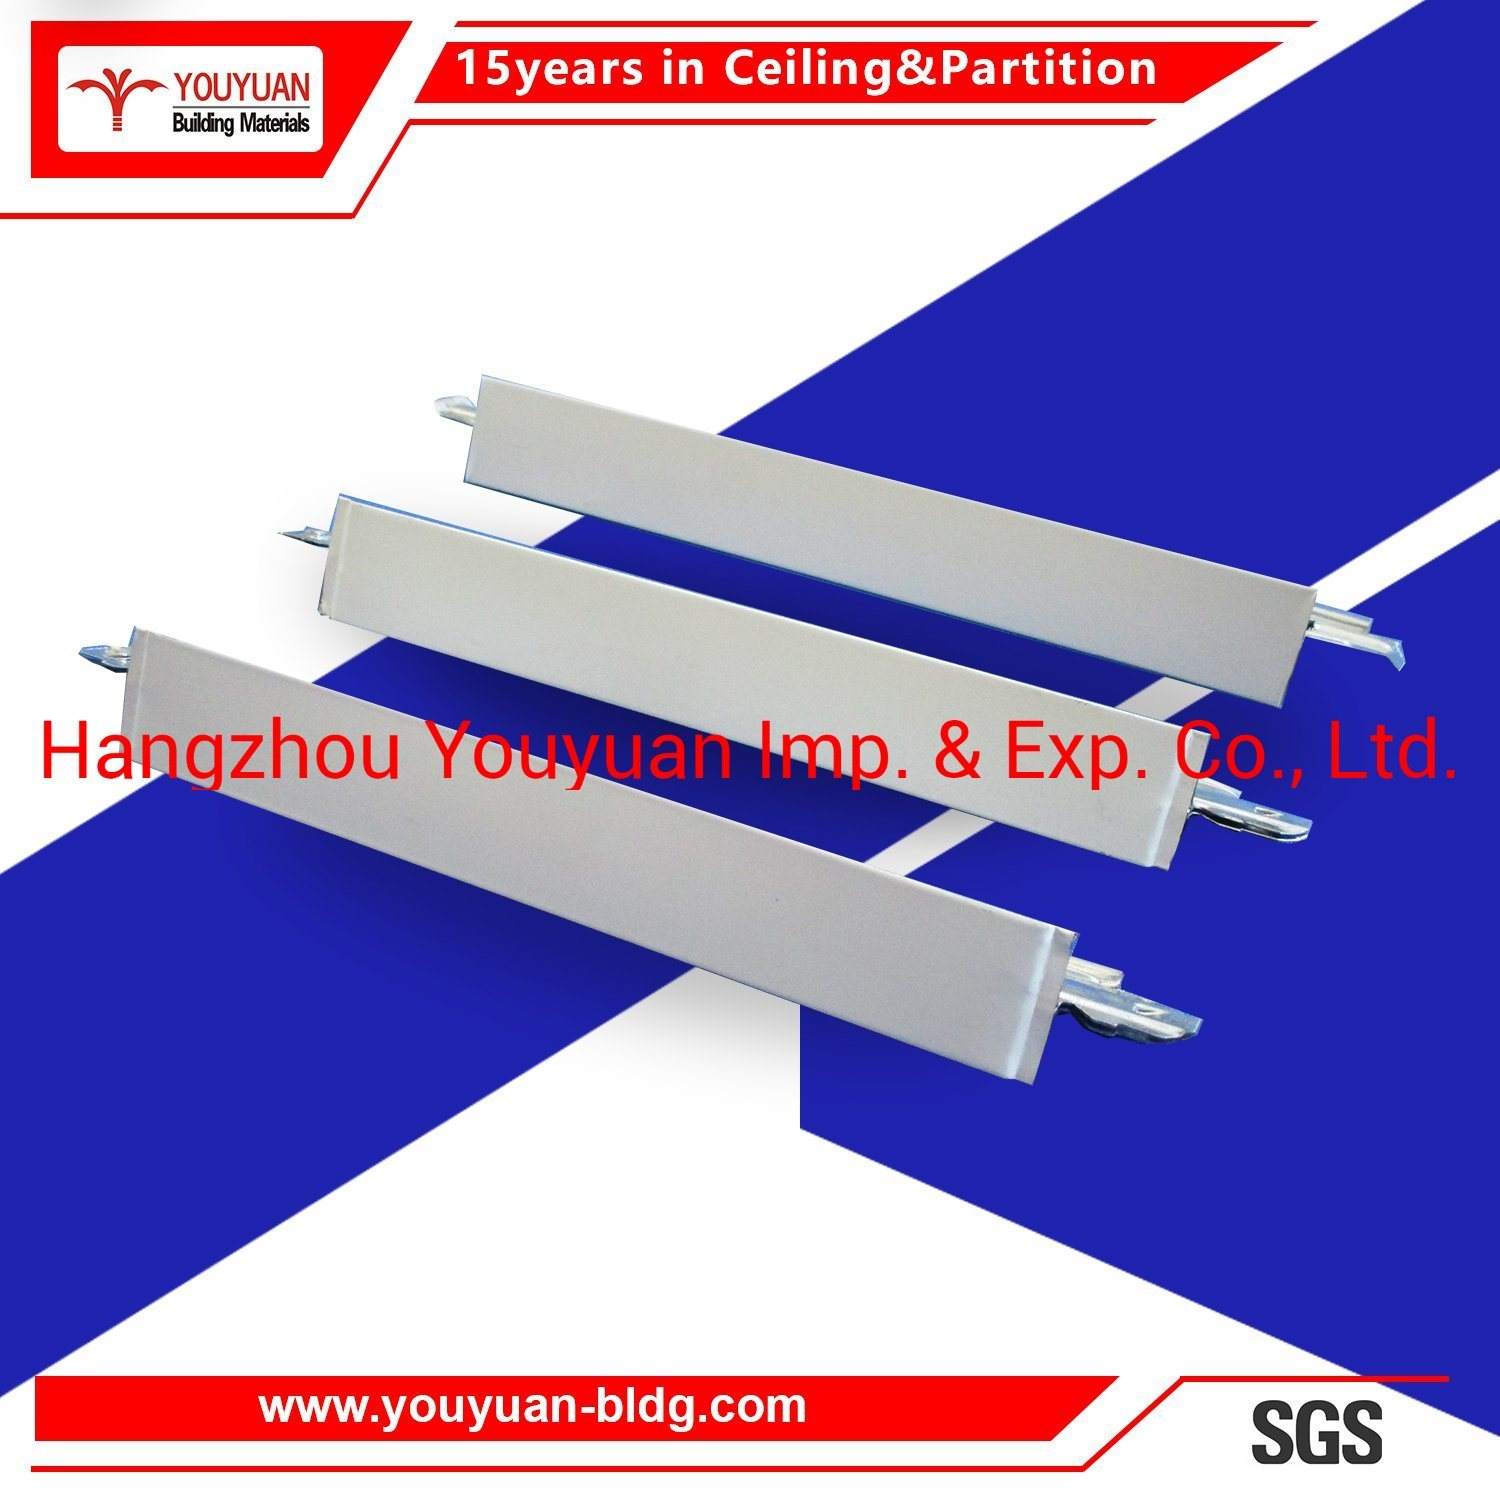 Hot Item Excellent Quality Ceiling Building Materials Light Steel Keel Suspended Ceiling Grid Tee Bar